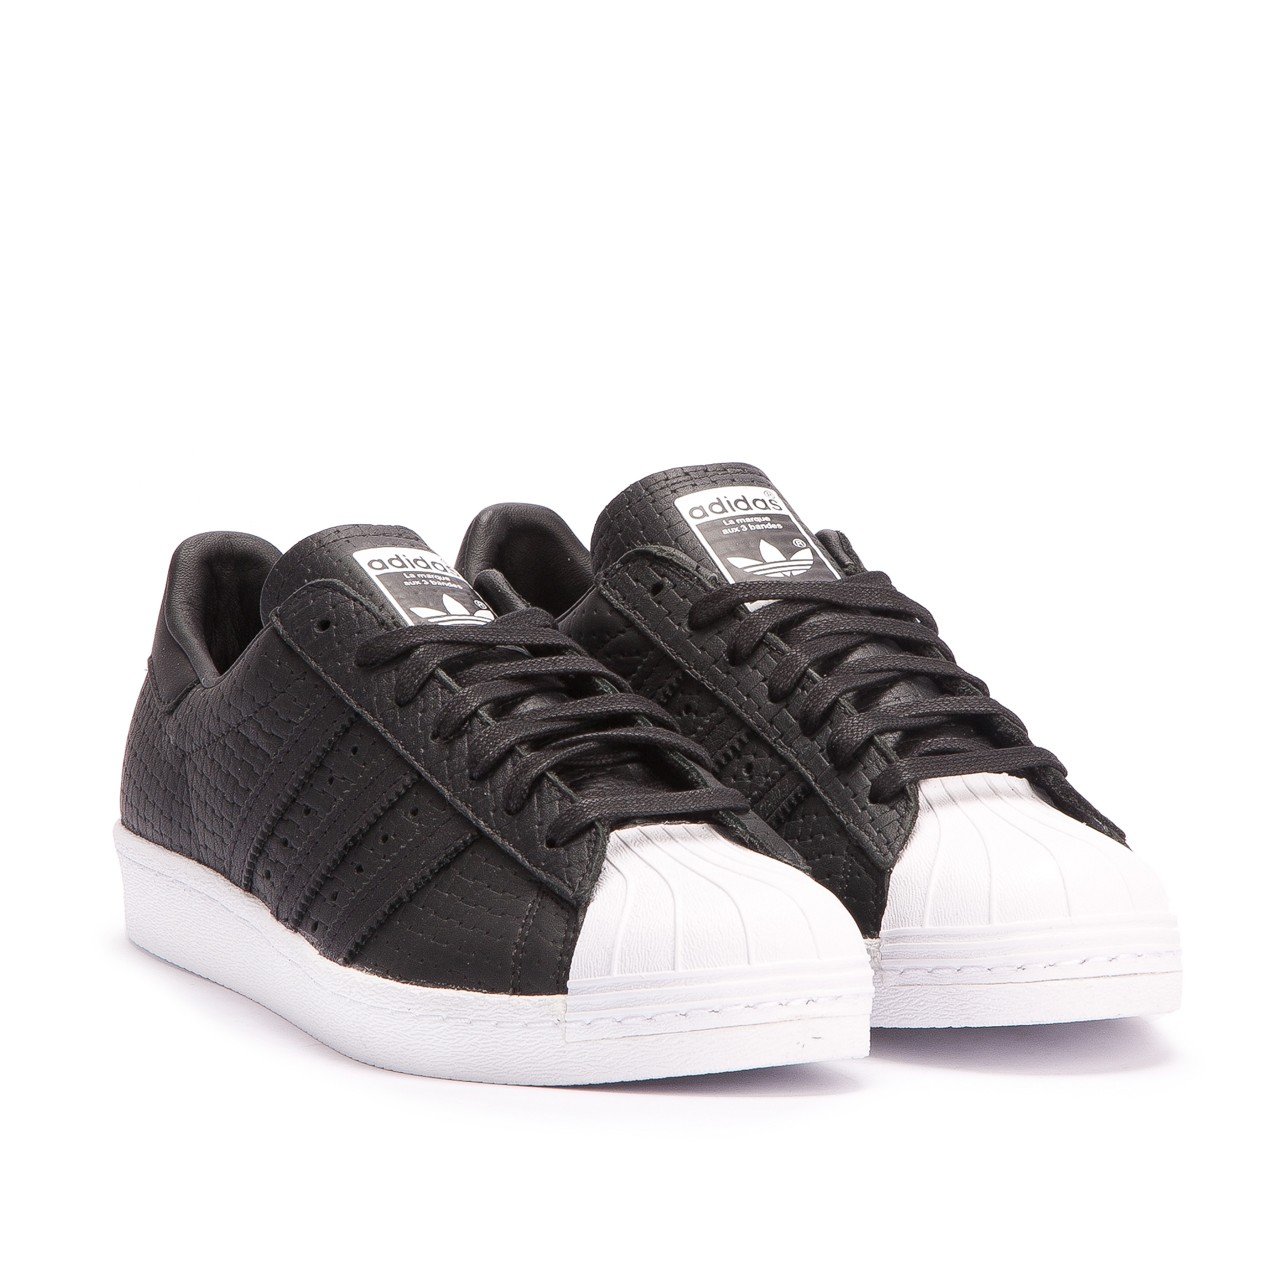 adidas superstar 80s woven (black) GSXDQPR